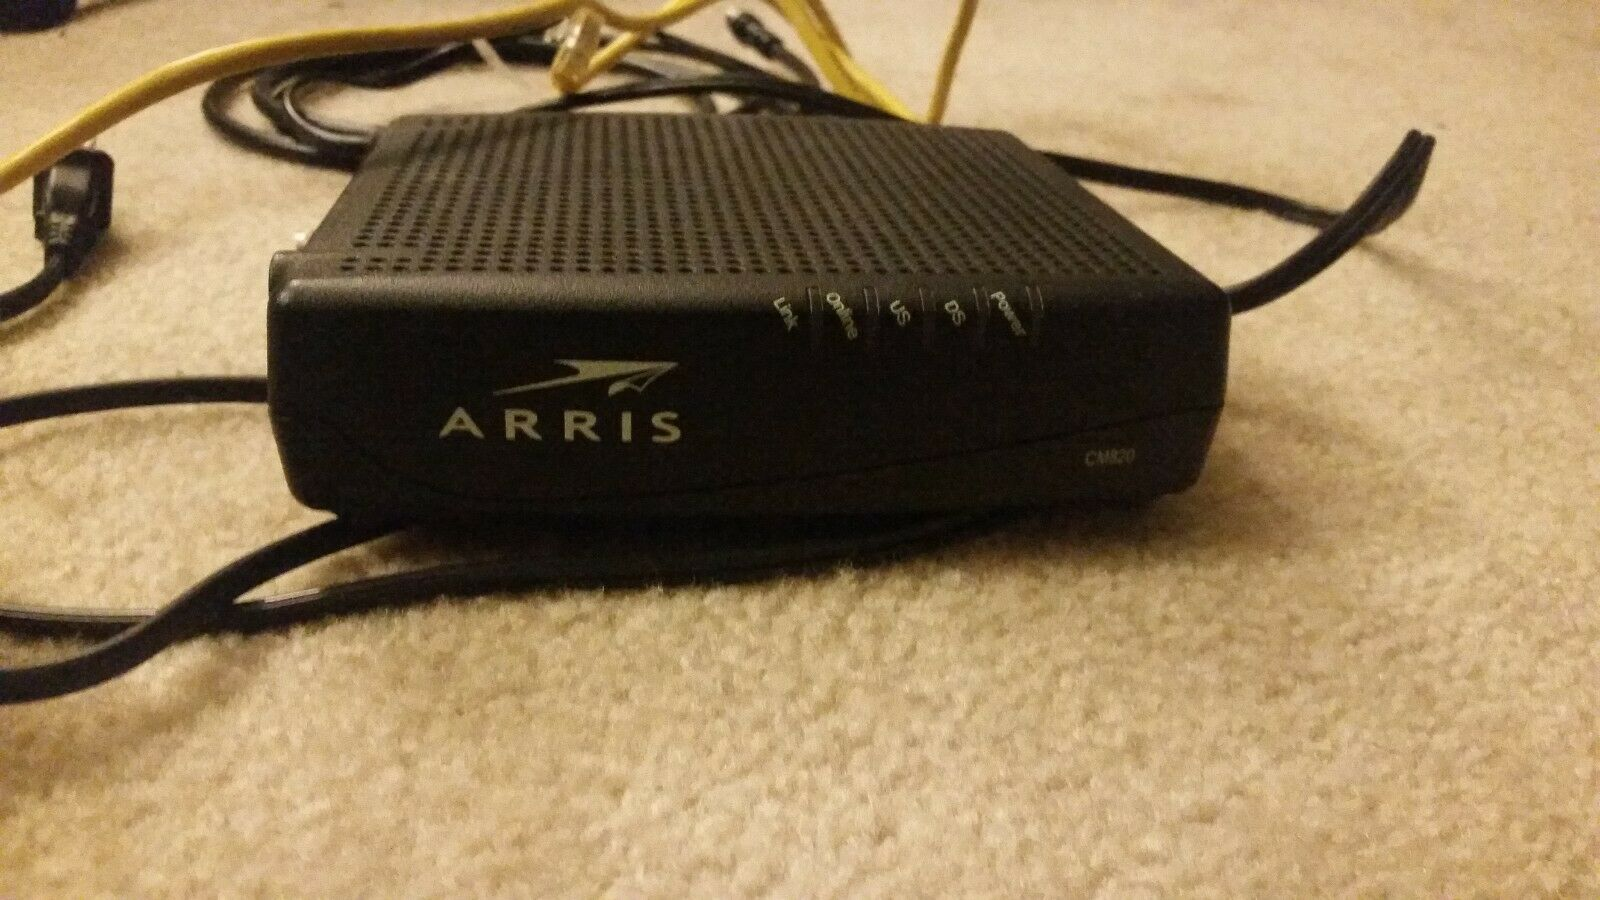 Arris Tg2482 Router Login